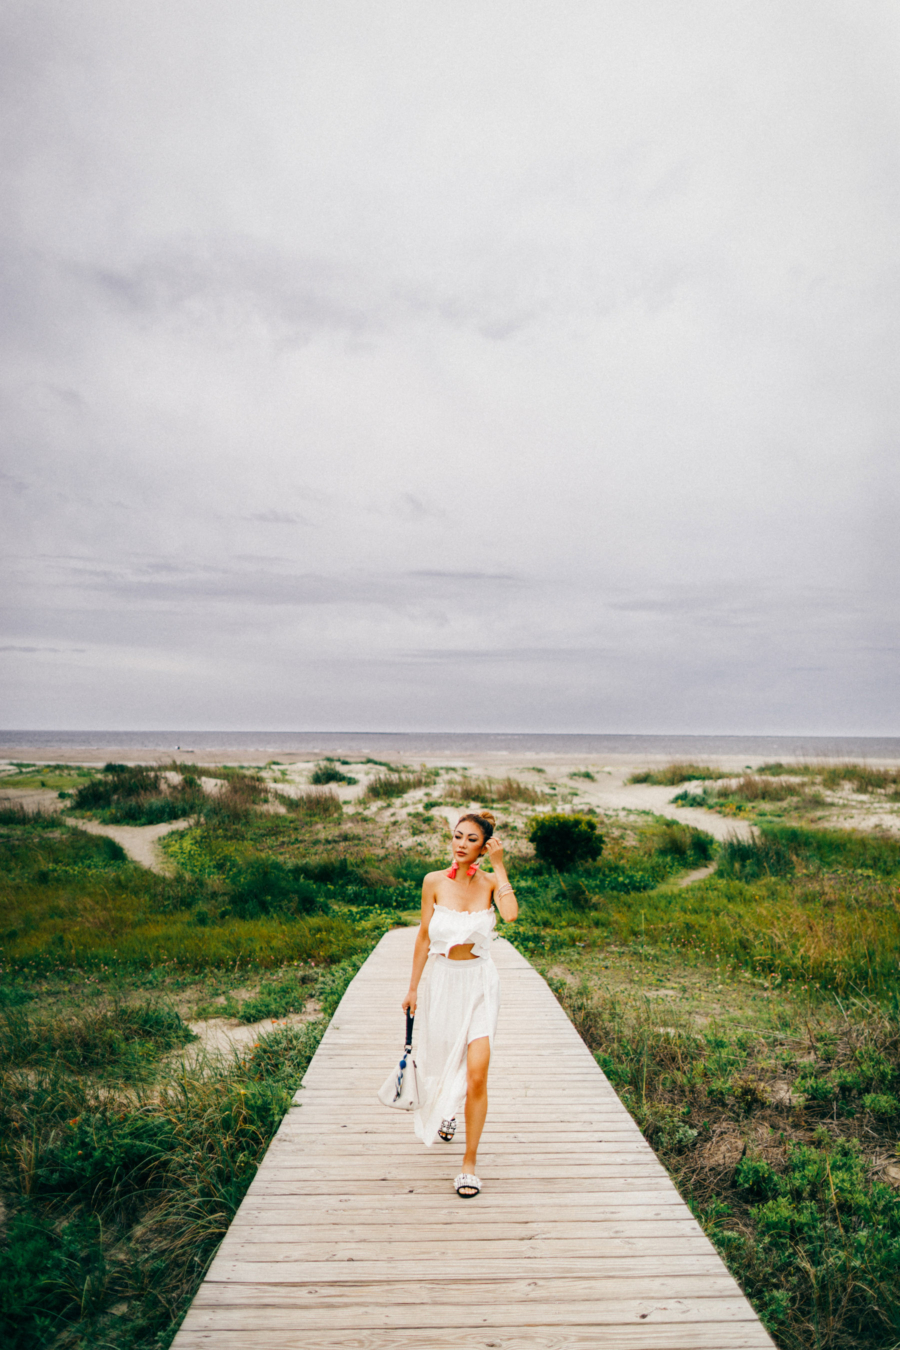 Sullivan's Island Stroll - Travel Guide: 36 hours in Charleston, SC // NotJessFashion.com